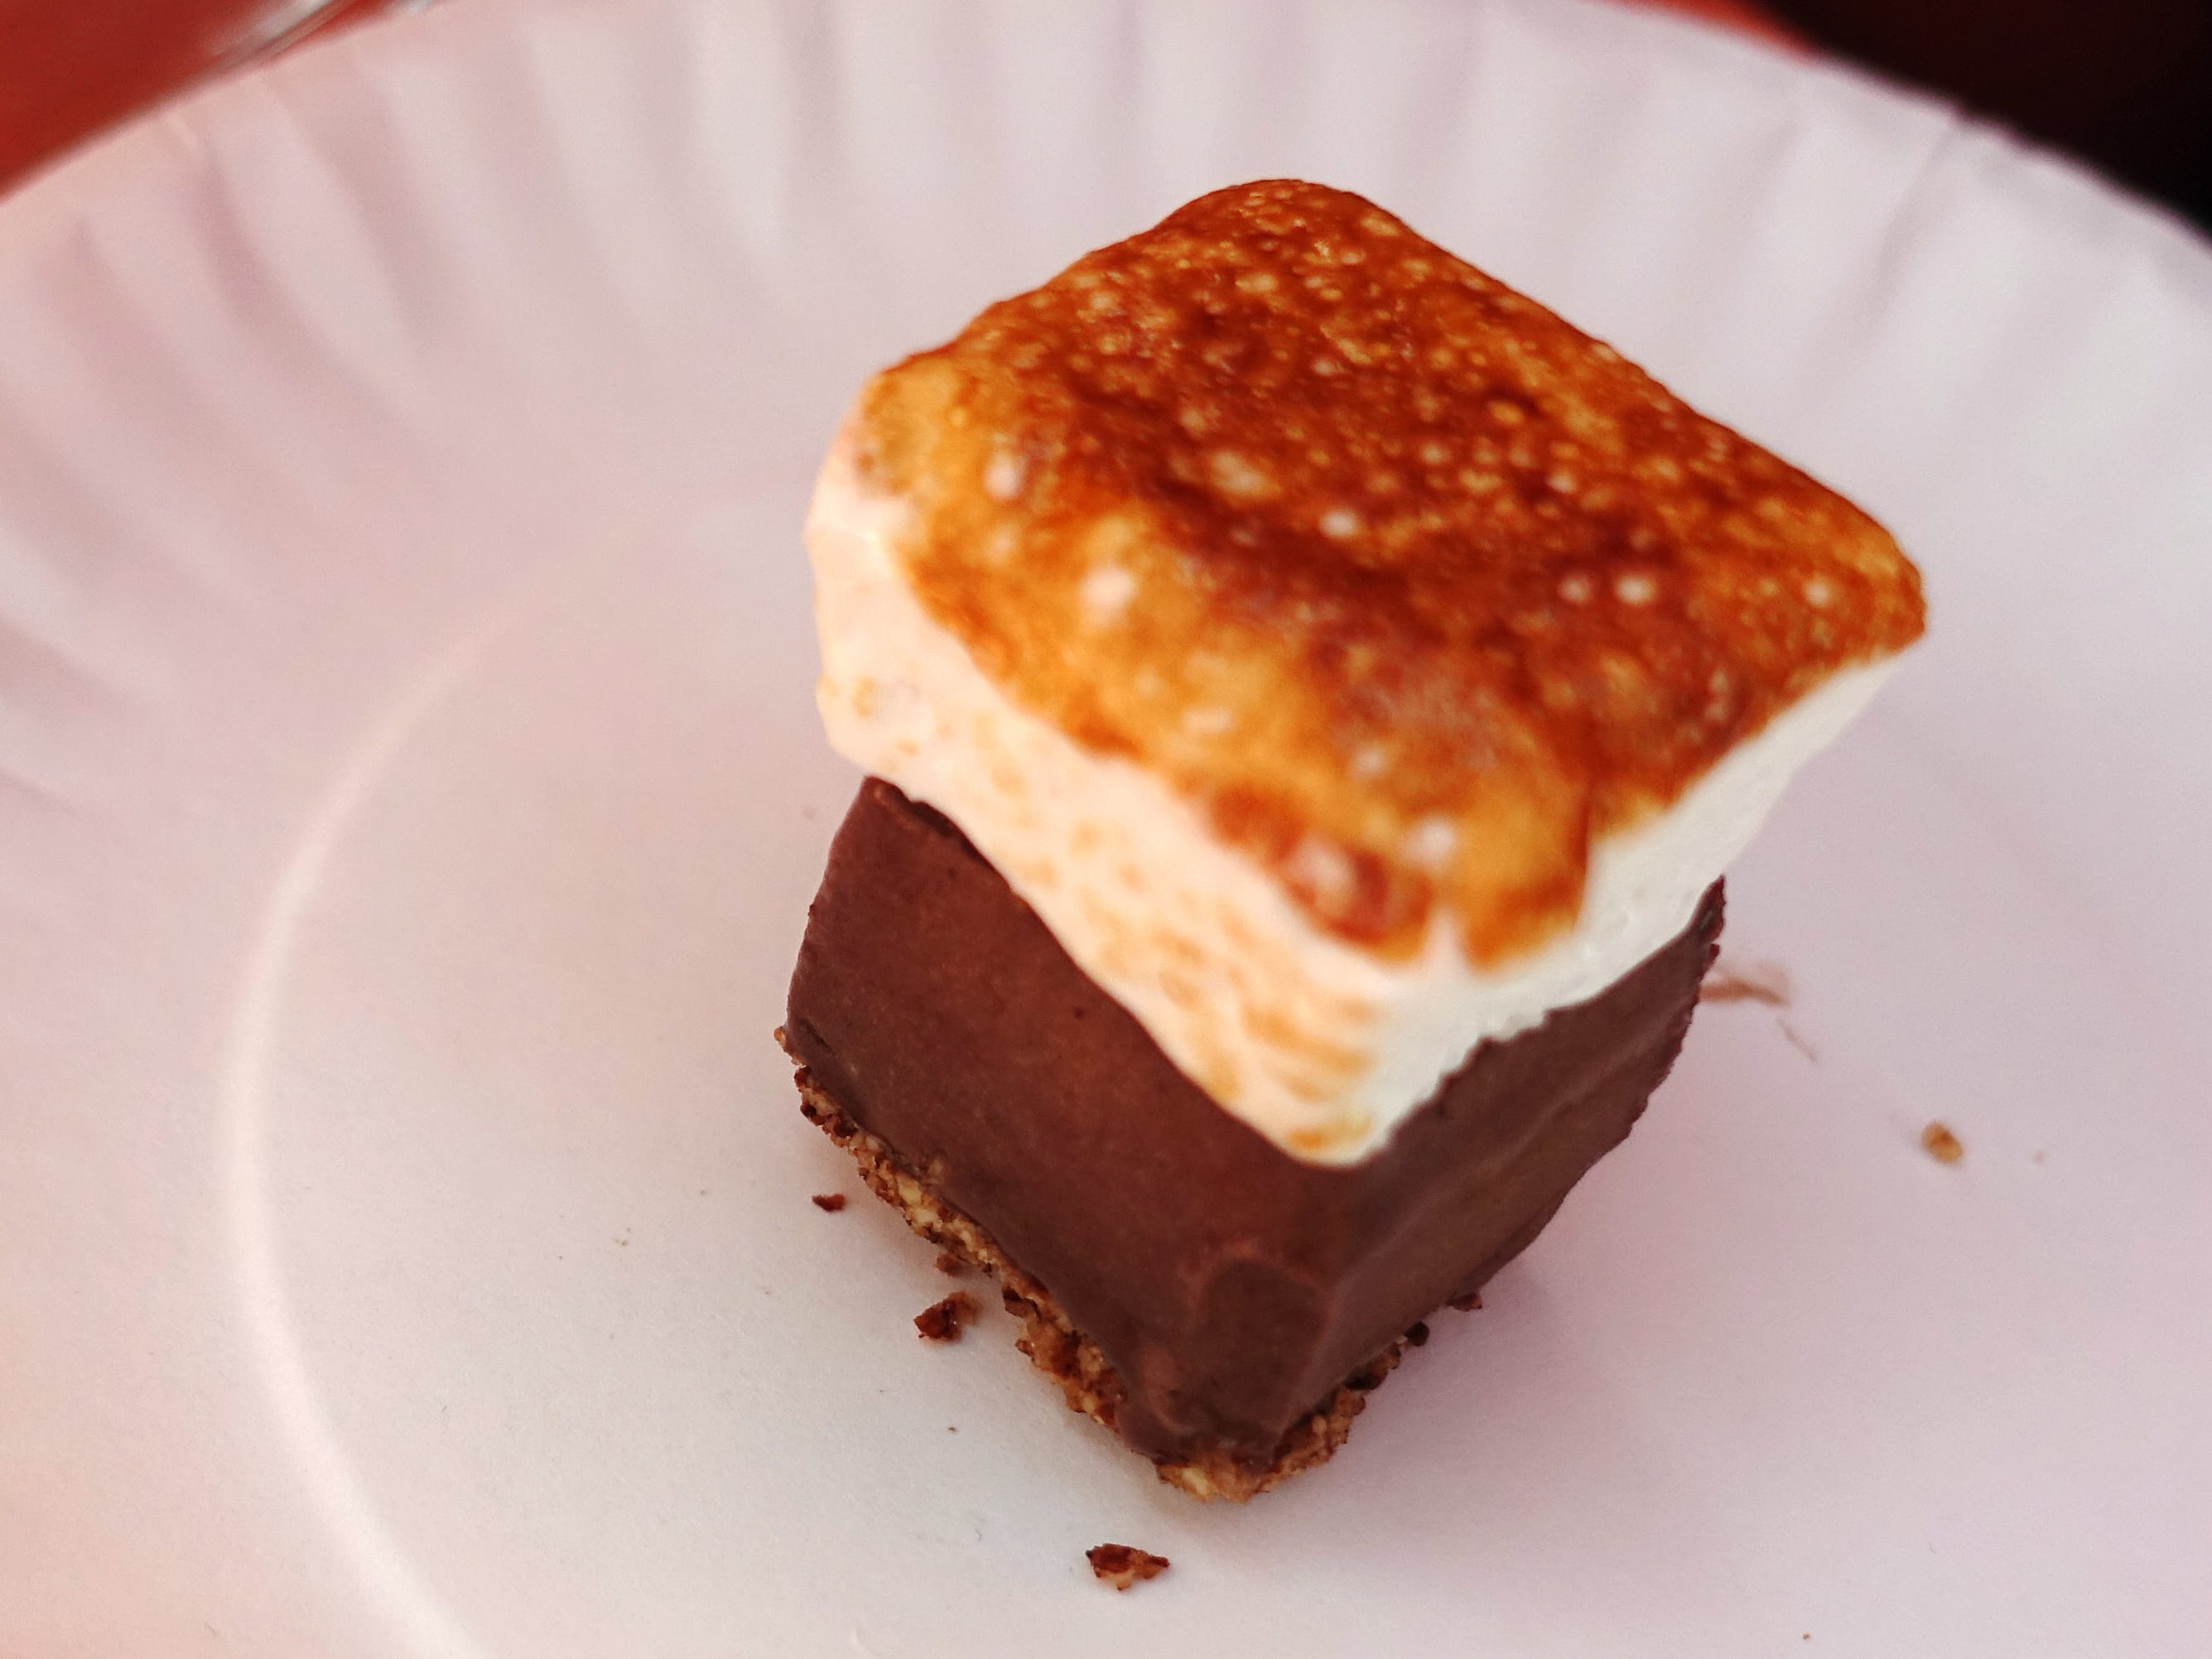 Mini s'more with toasted house marshmallow, dark chocolate ice cream and crushed almond crust from Sweet Republic at the 2019 Devour Culinary Classic at the Desert Botanical Garden in Phoenix.